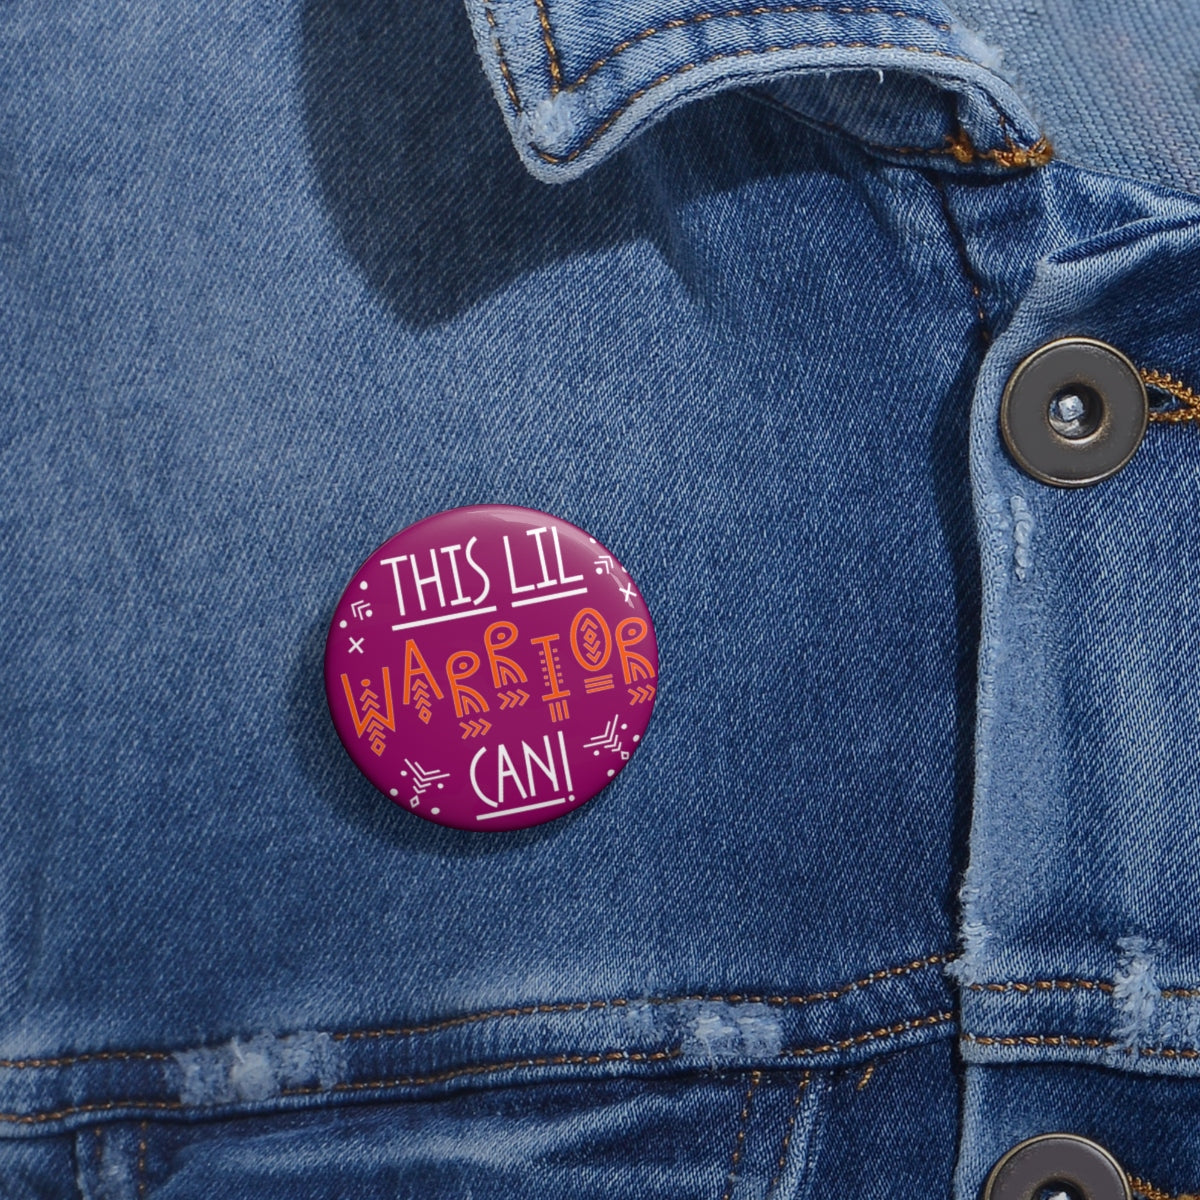 'This Lil Warrior Can!' 2 Metal Pin Buttons - skyrockettees